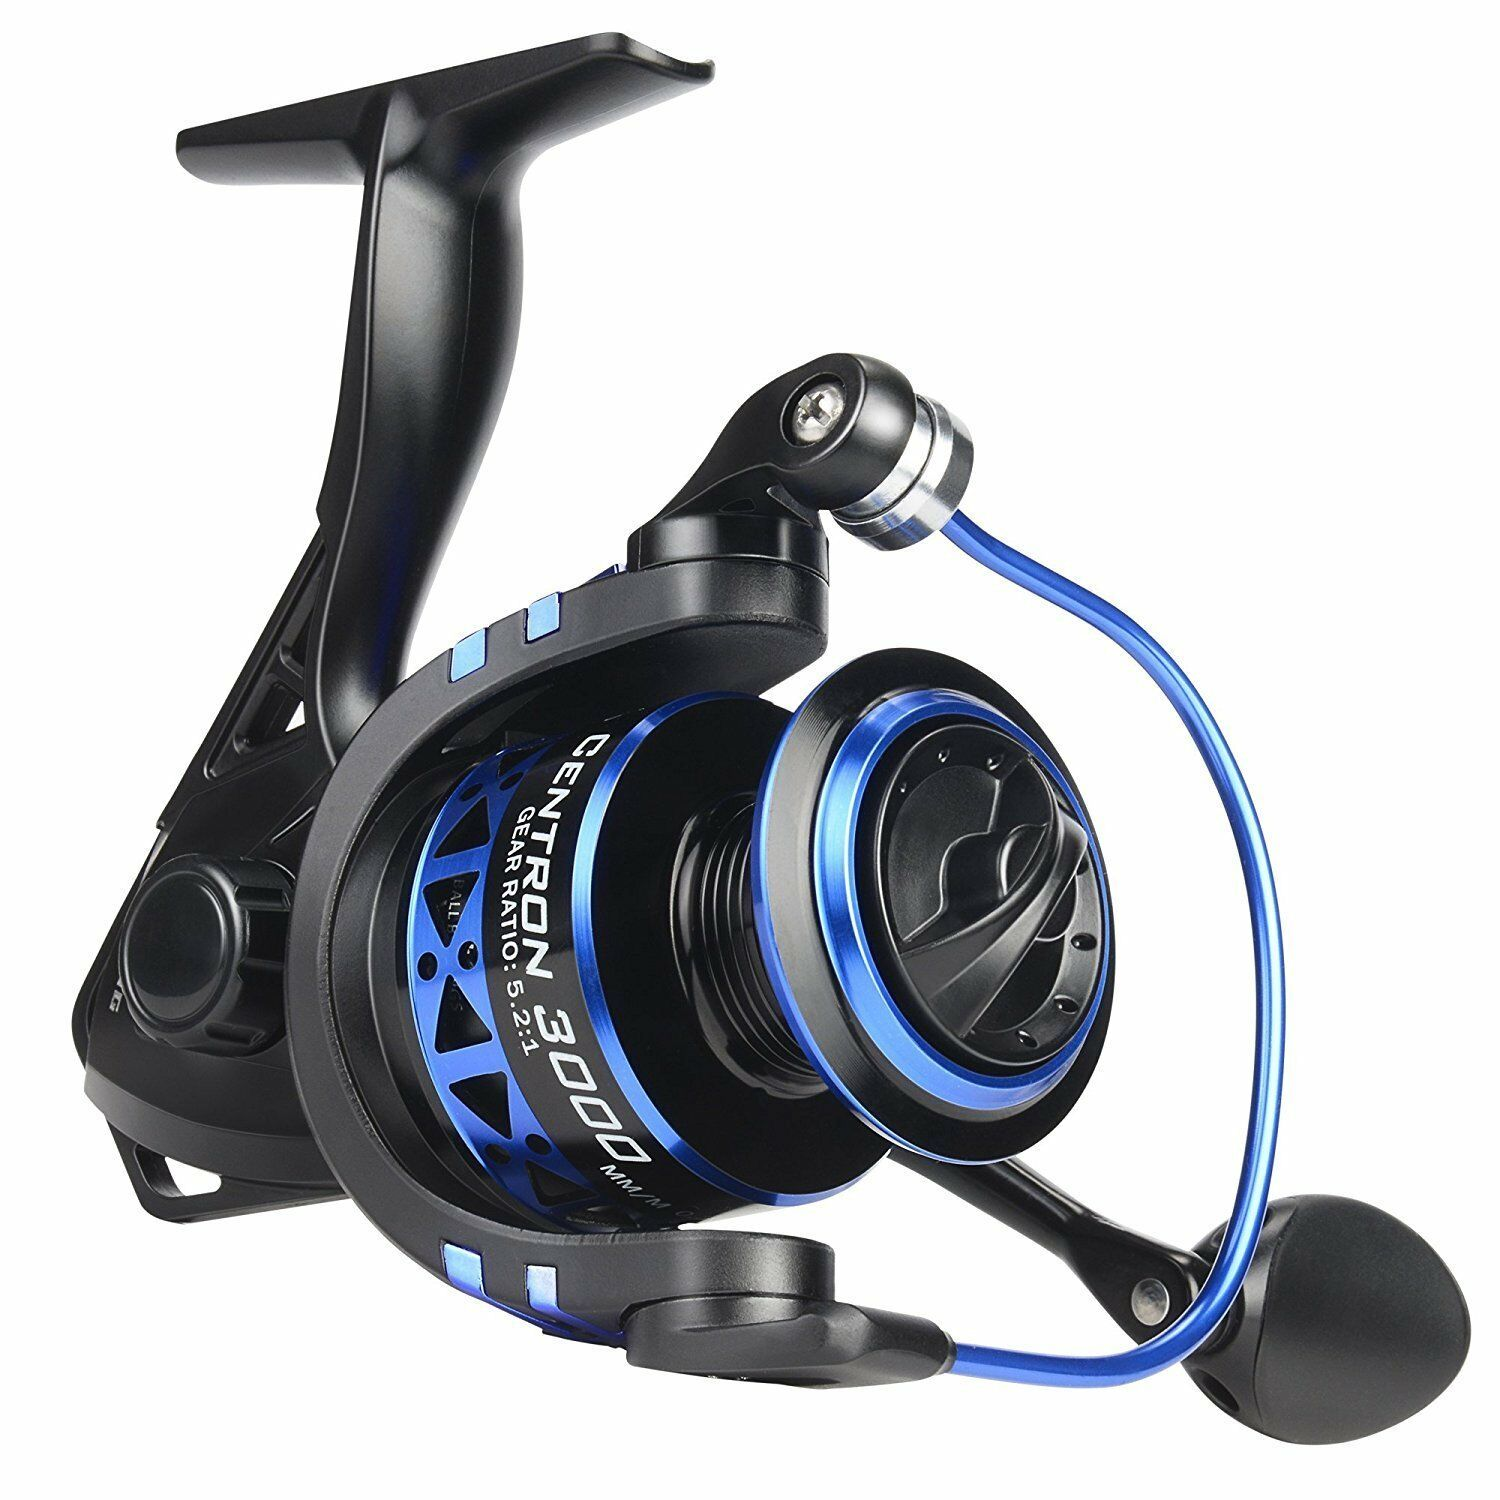 Fishing Spinning Reel 9 +1 BB Lightweight Smooth Bass Casting Spool Centron 3000